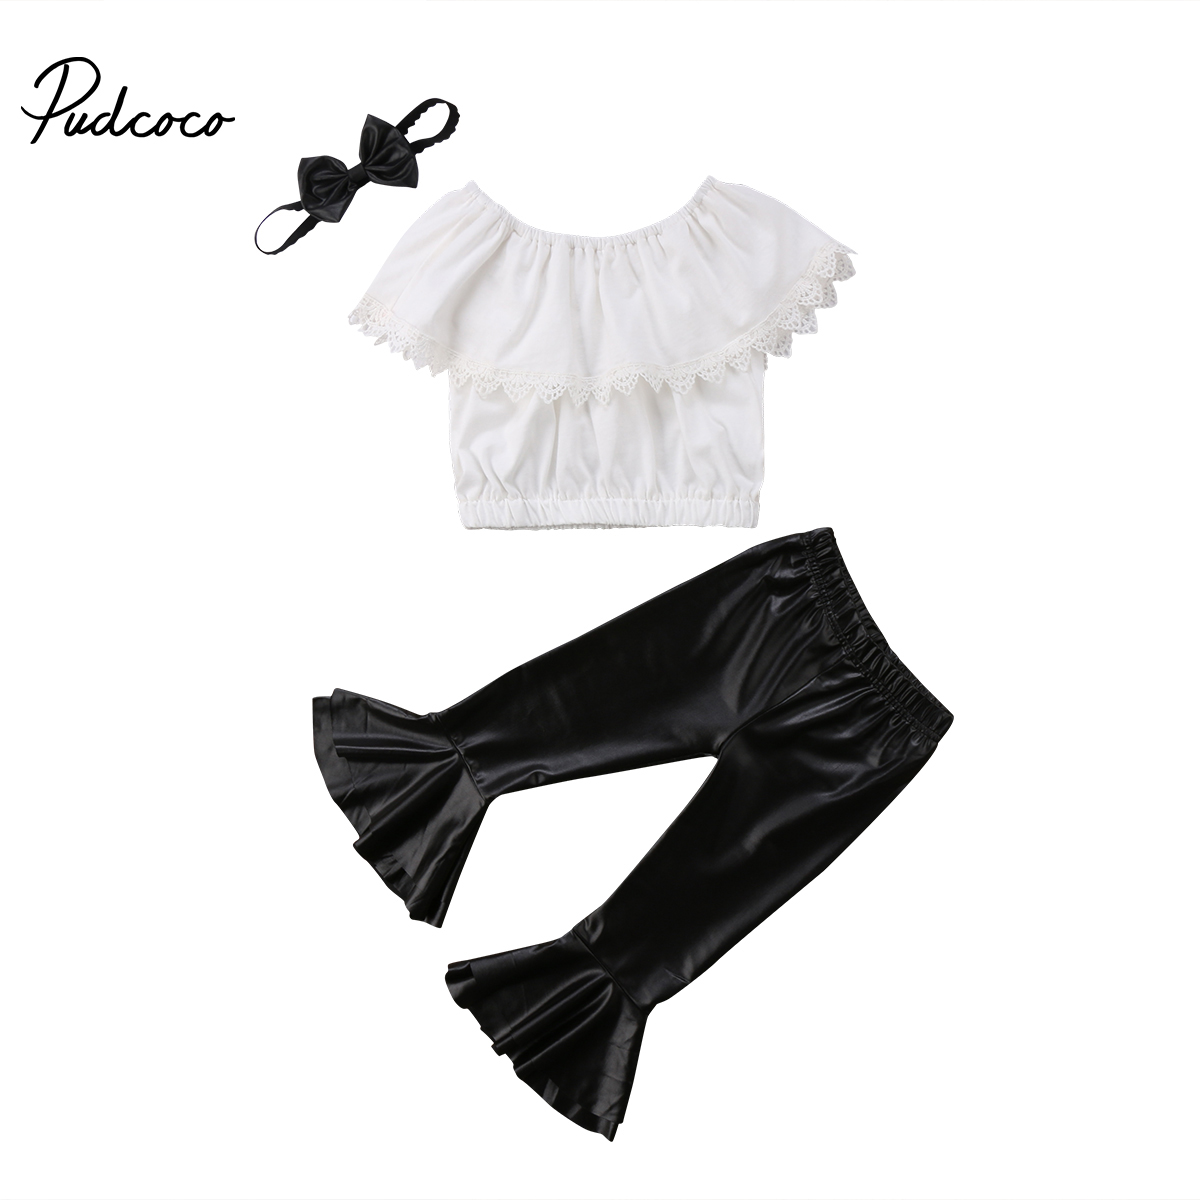 2018 Brand New Toddler Infant Kid Baby Girl Clothes Set Strapless Tops PU Leather Flare Pant Headband 3Pcs Summer Ruffled Outfit infant tops pants love pattern headband baby girl outfit set clothing 3pcs kid children baby girls clothes long sleeve